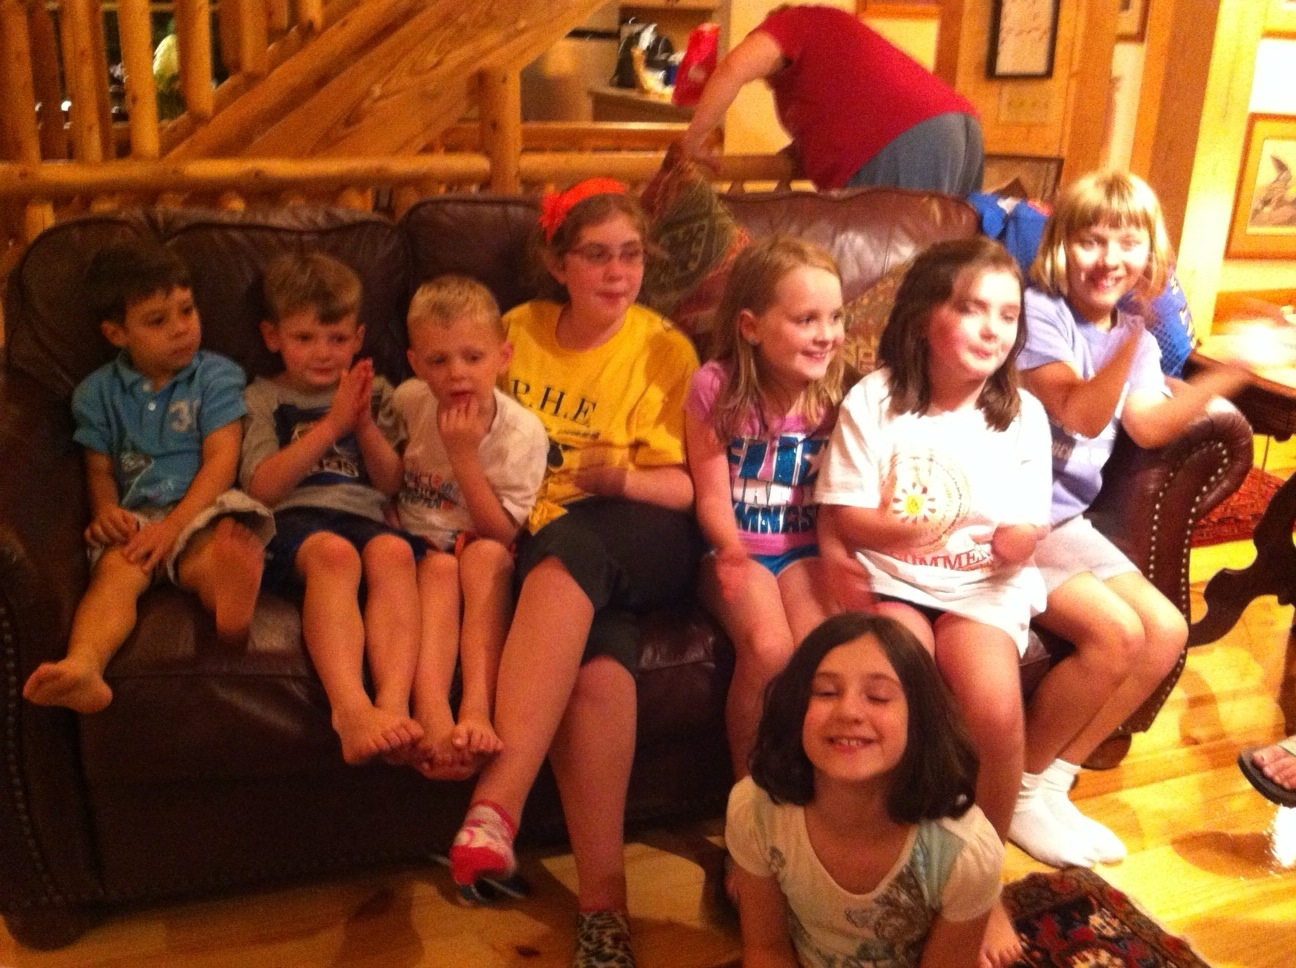 Bunch of kids on the couch